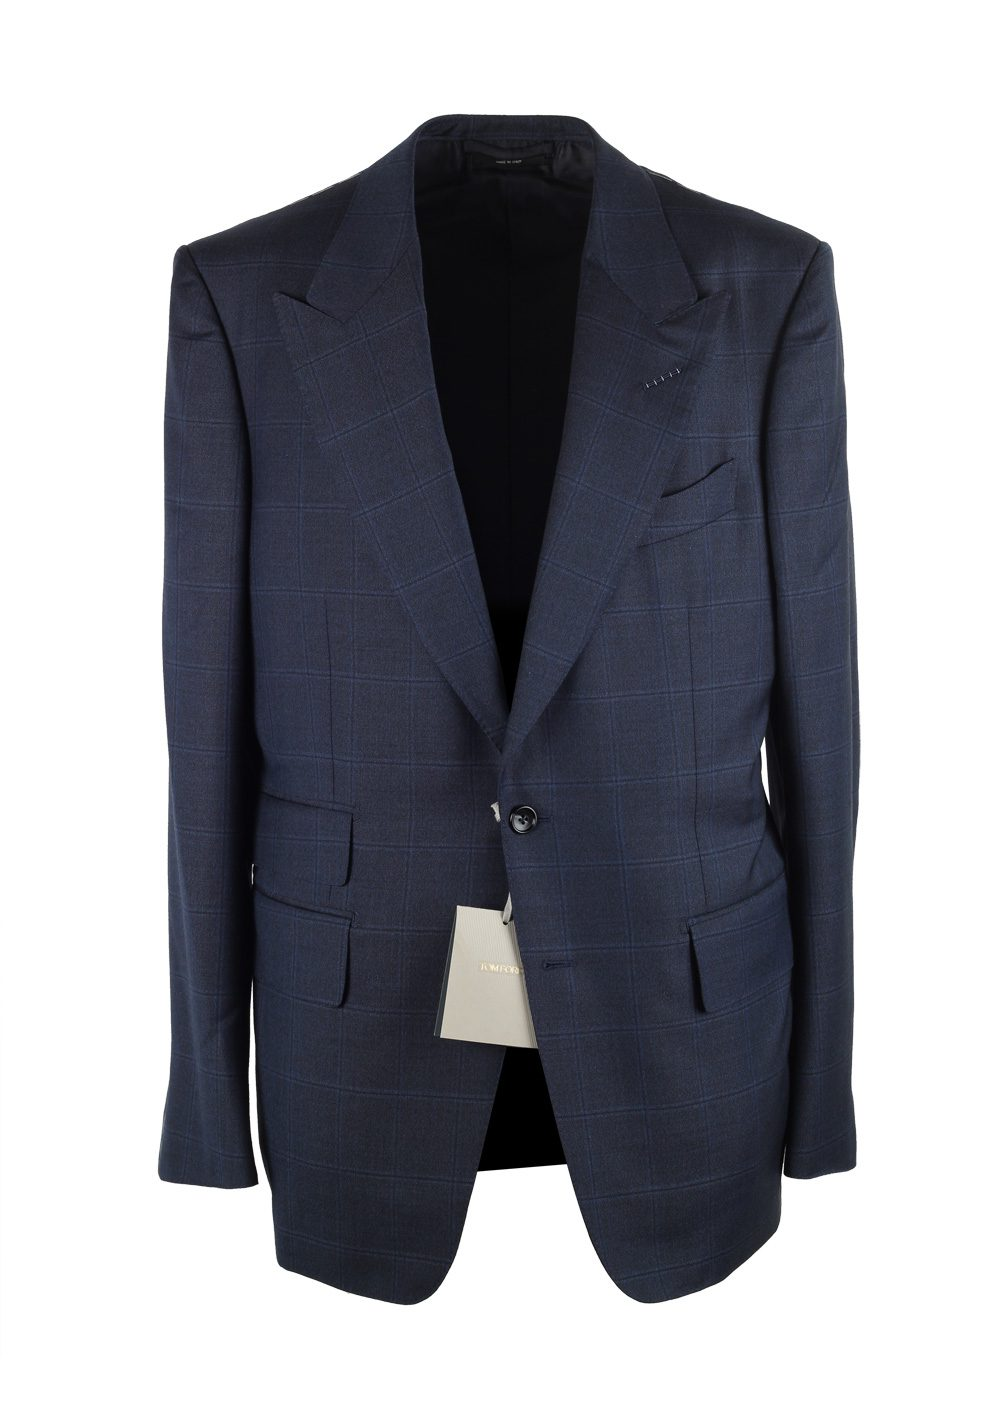 TOM FORD Shelton Blue Checked Suit Size 52 / 42R U.S. In Wool | Costume Limité